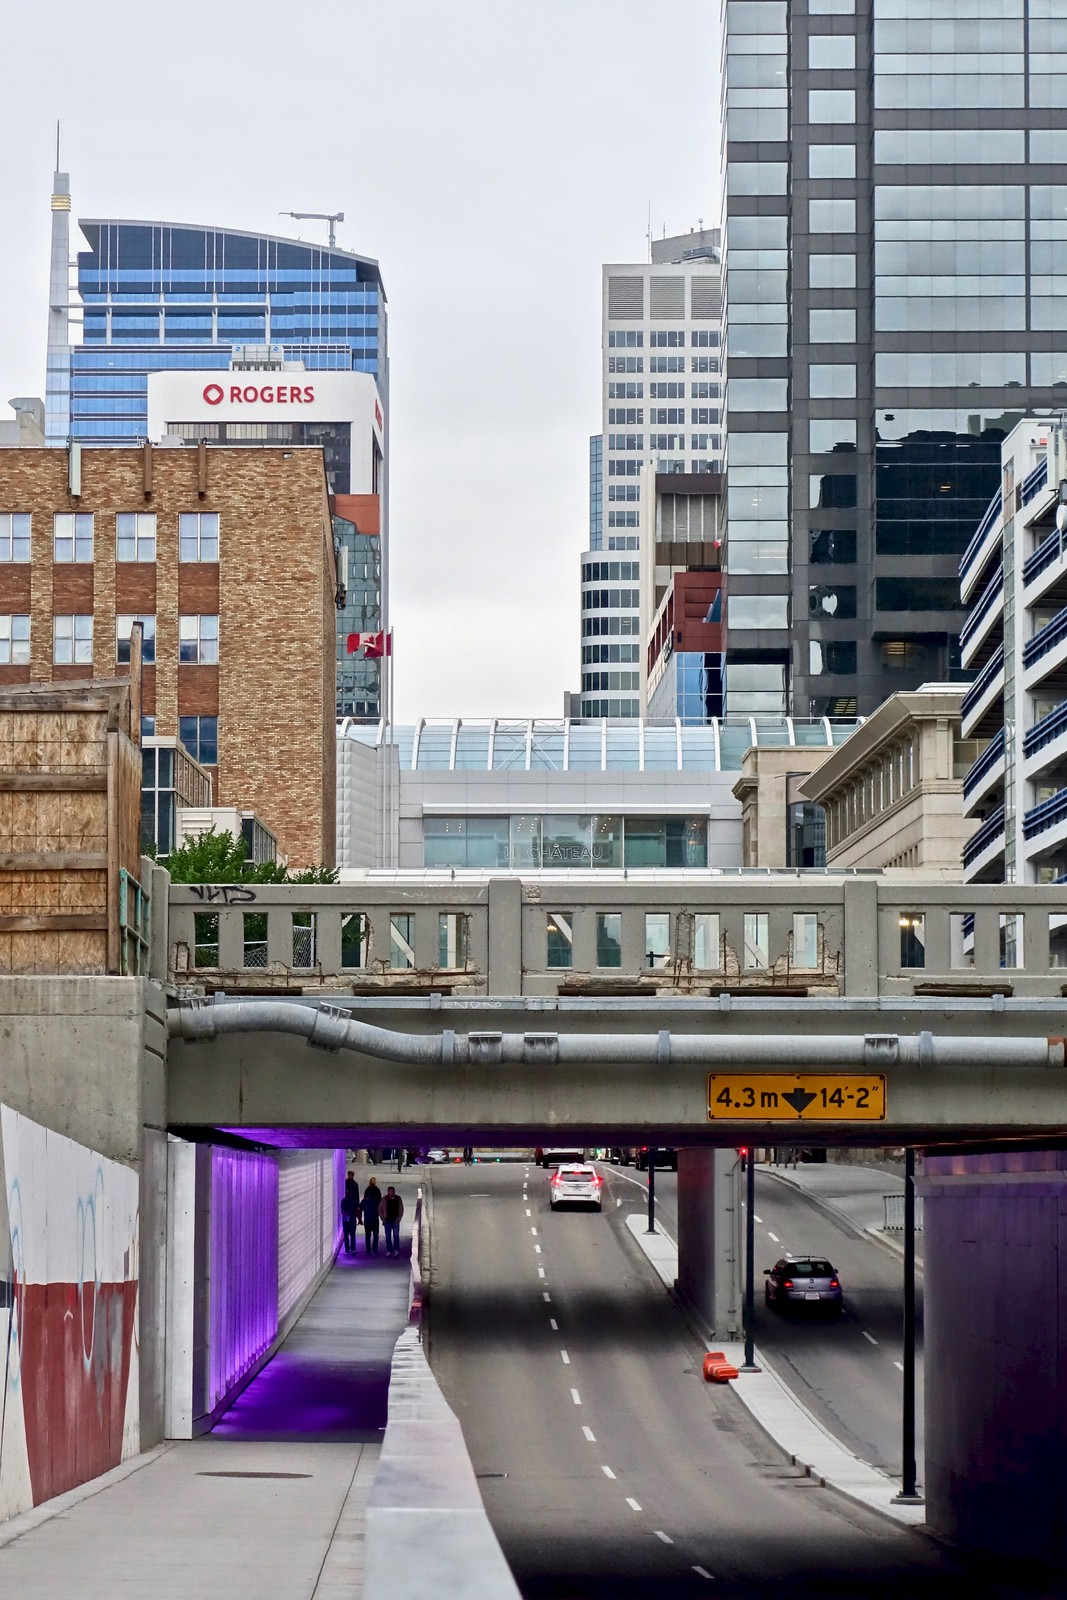 4th Street underpass